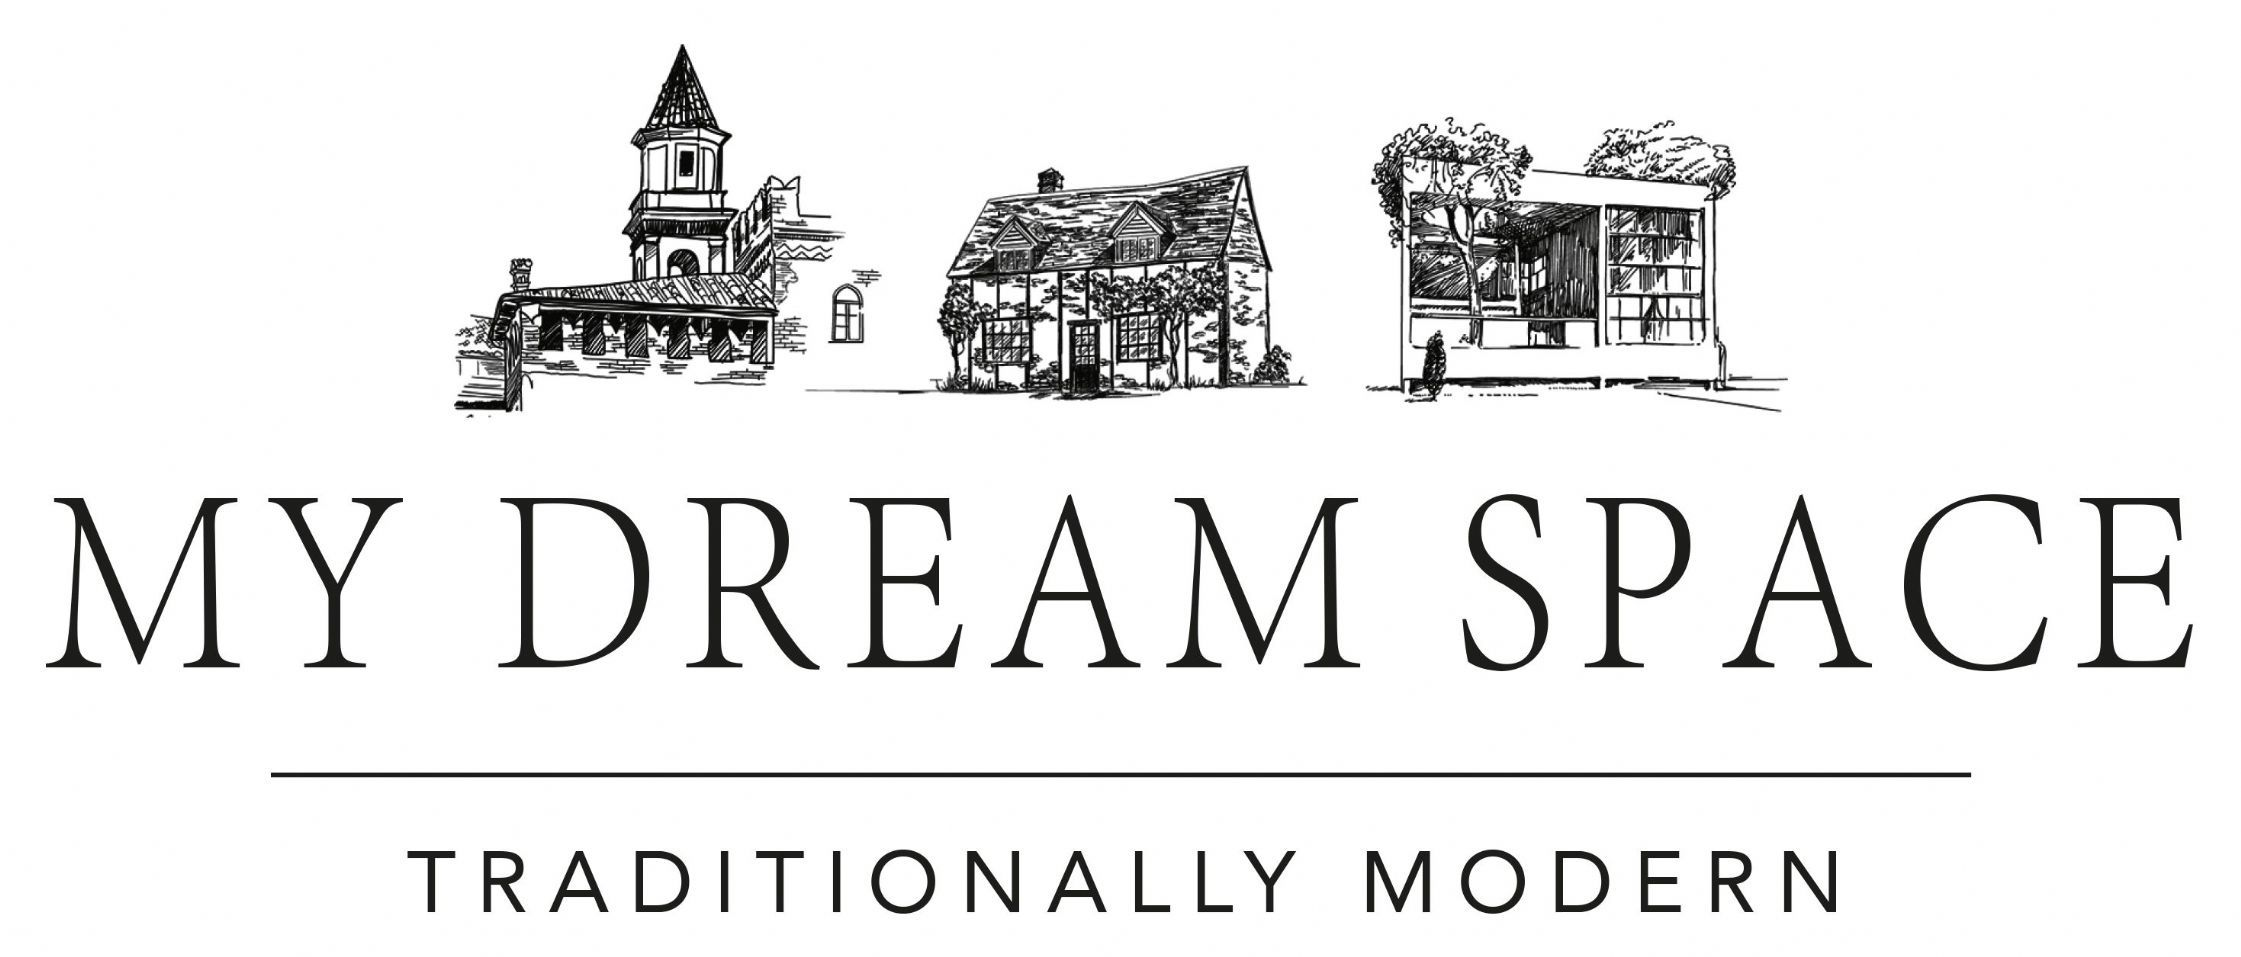 We at My Dream Space provide a full range of products and